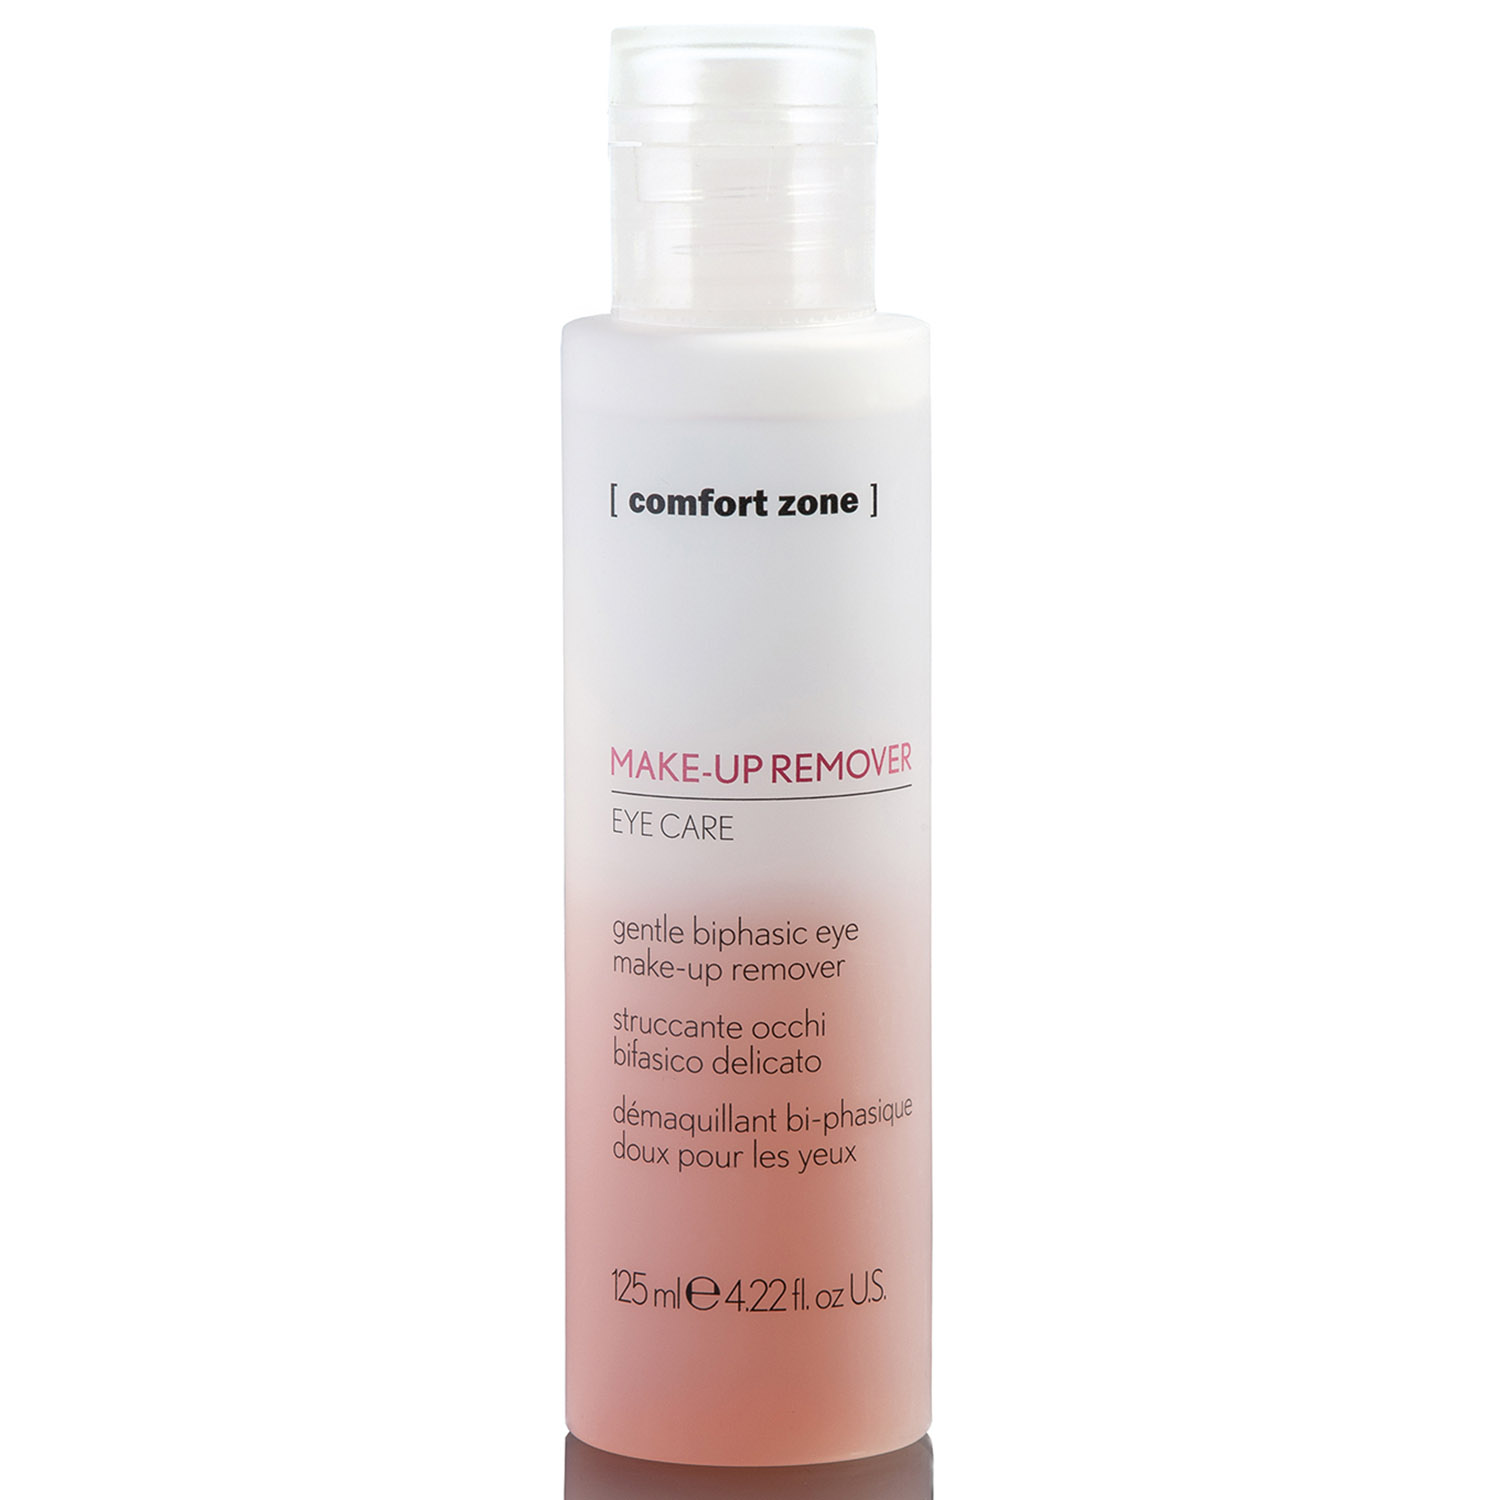 Comfort Zone everyday make-up remover (125 ml / 4.22 fl oz)